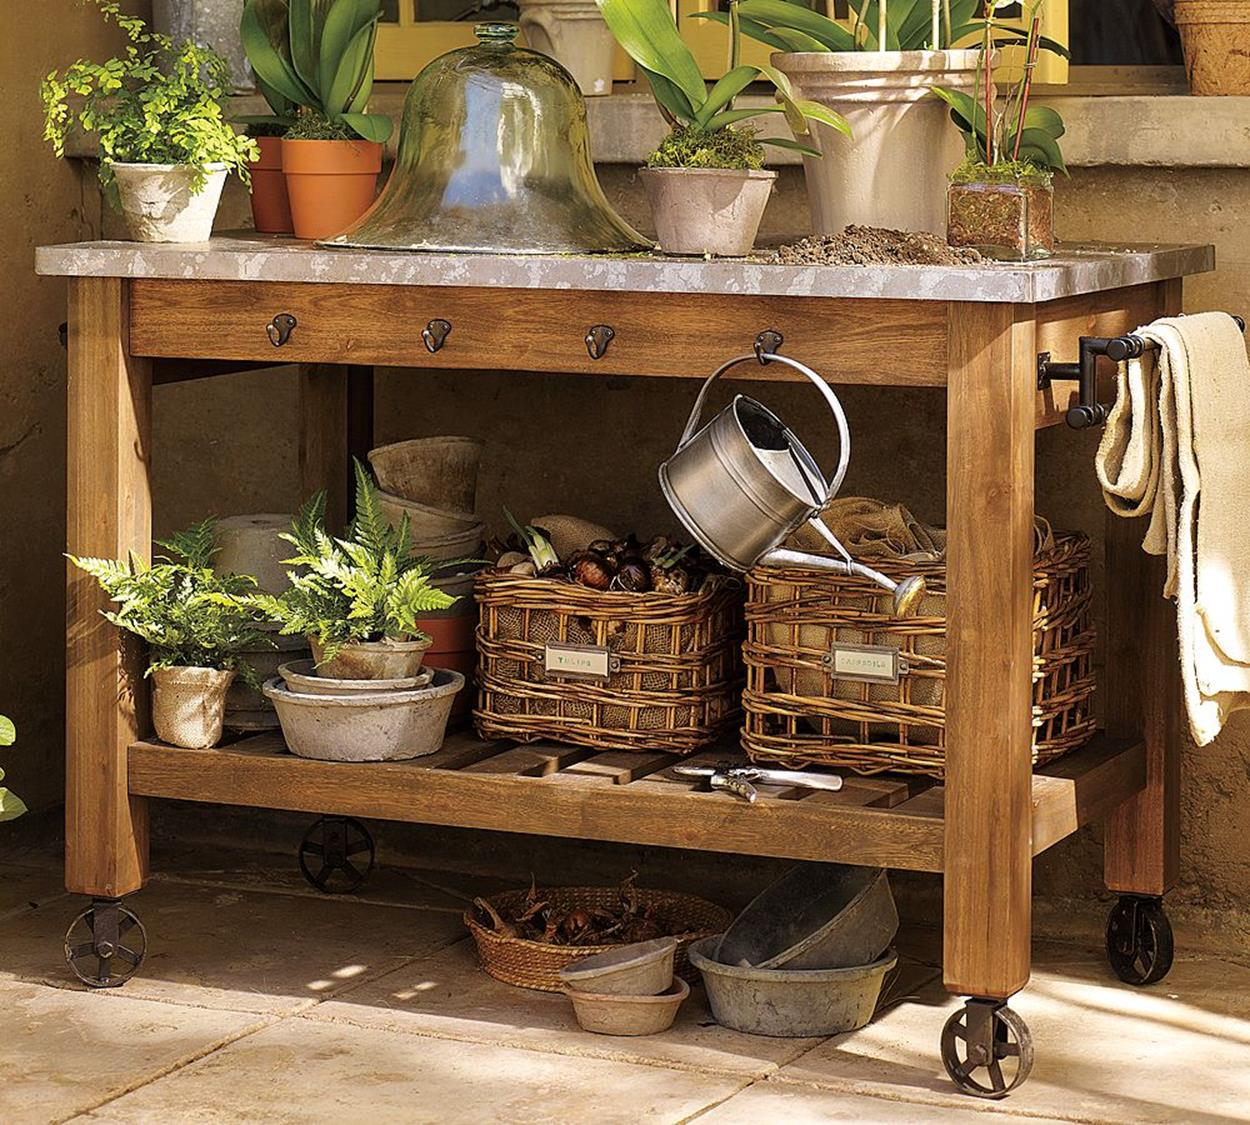 Outdoor Garden Potting Bench Design Ideas 22